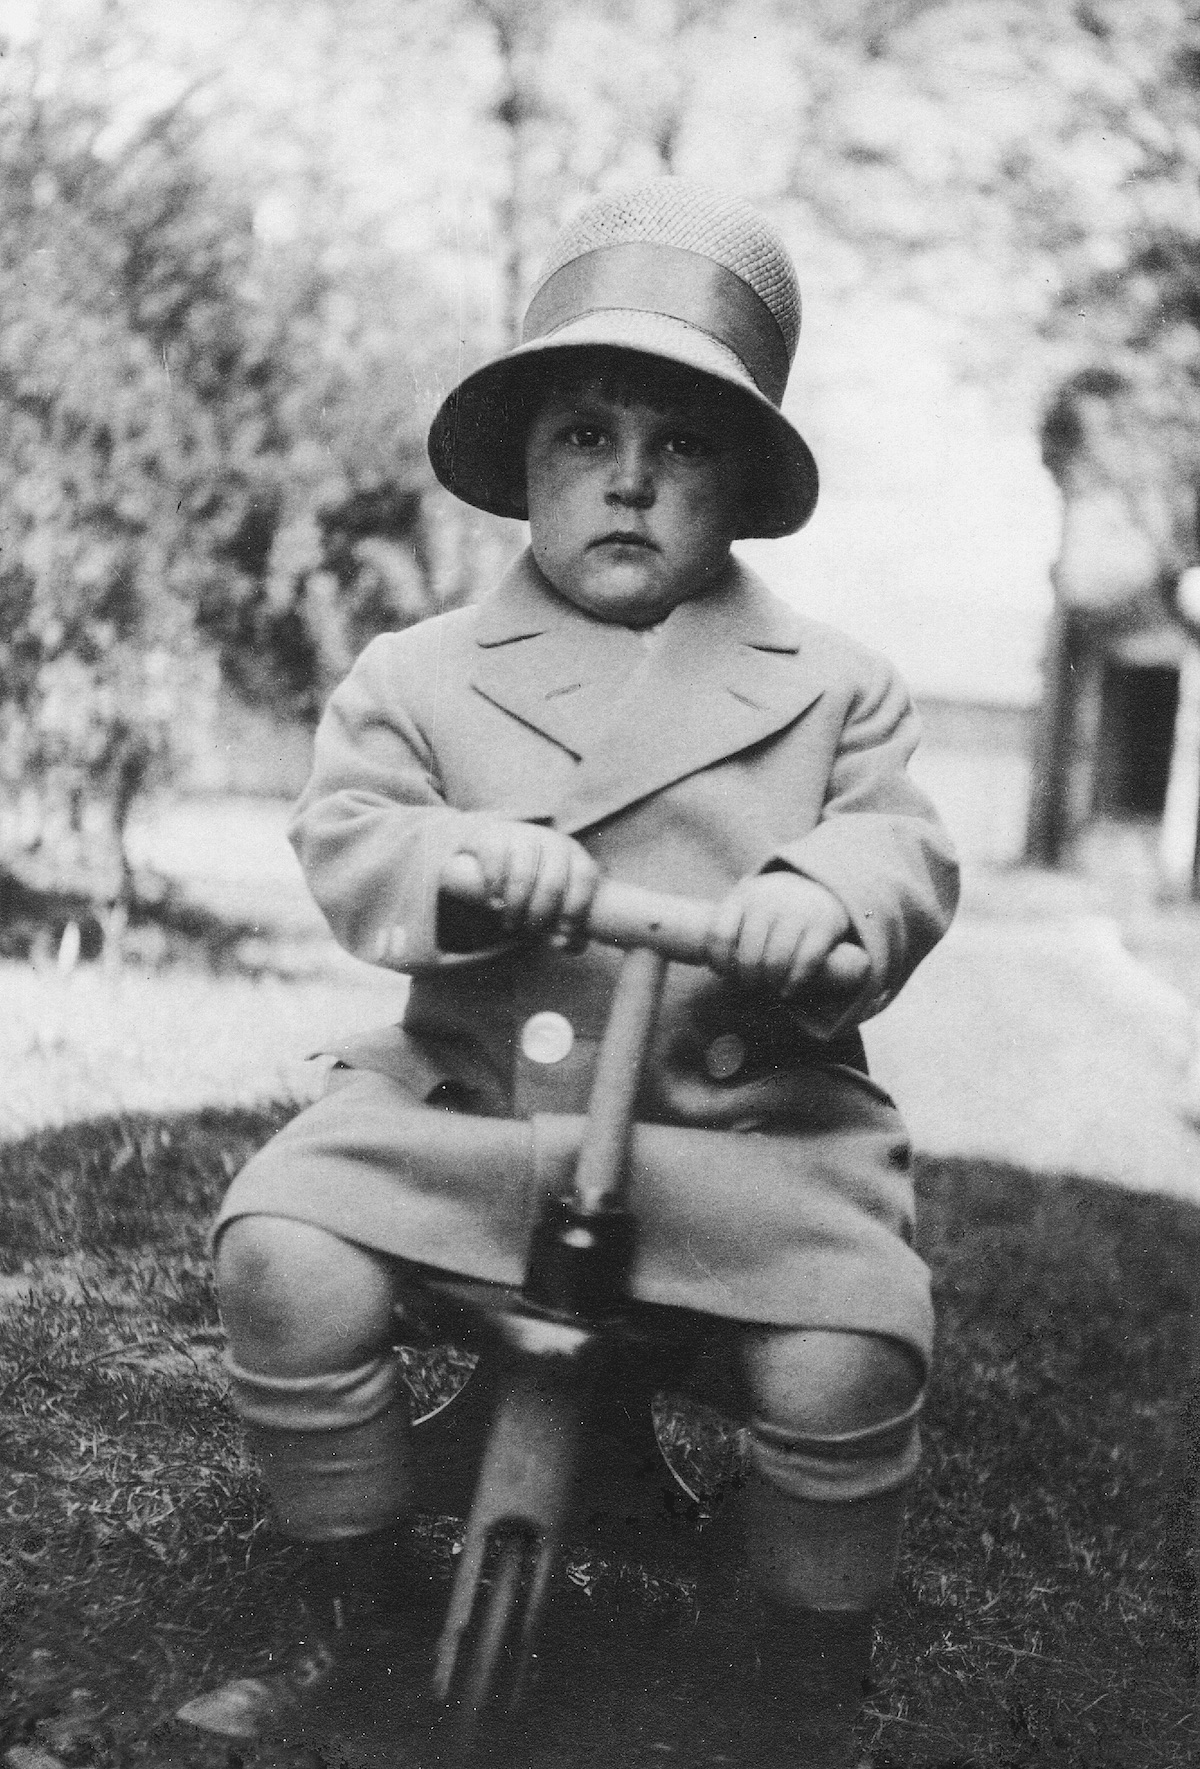 Hawley as a toddler. [Photo] Courtesy of the Michael and Meg Leonard collection